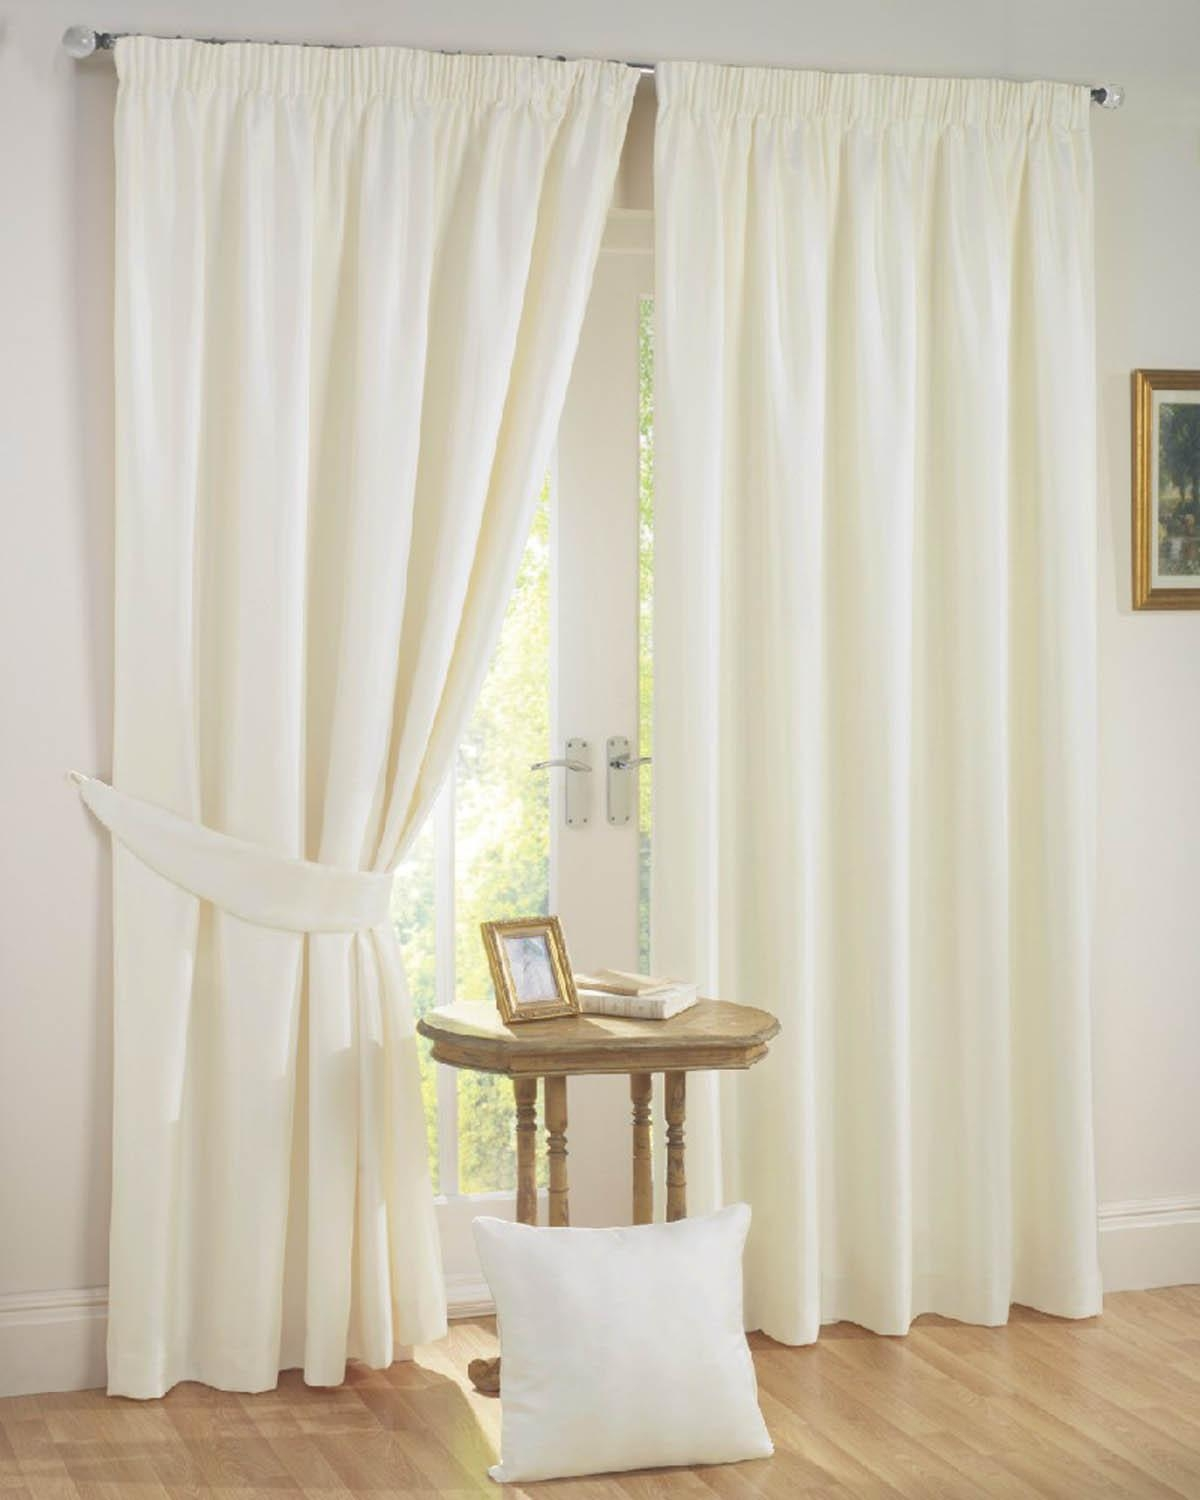 Sunset Ready Made Curtains Cream Free Uk Delivery Terrys Fabrics With Plain White Blackout Curtains (View 9 of 15)